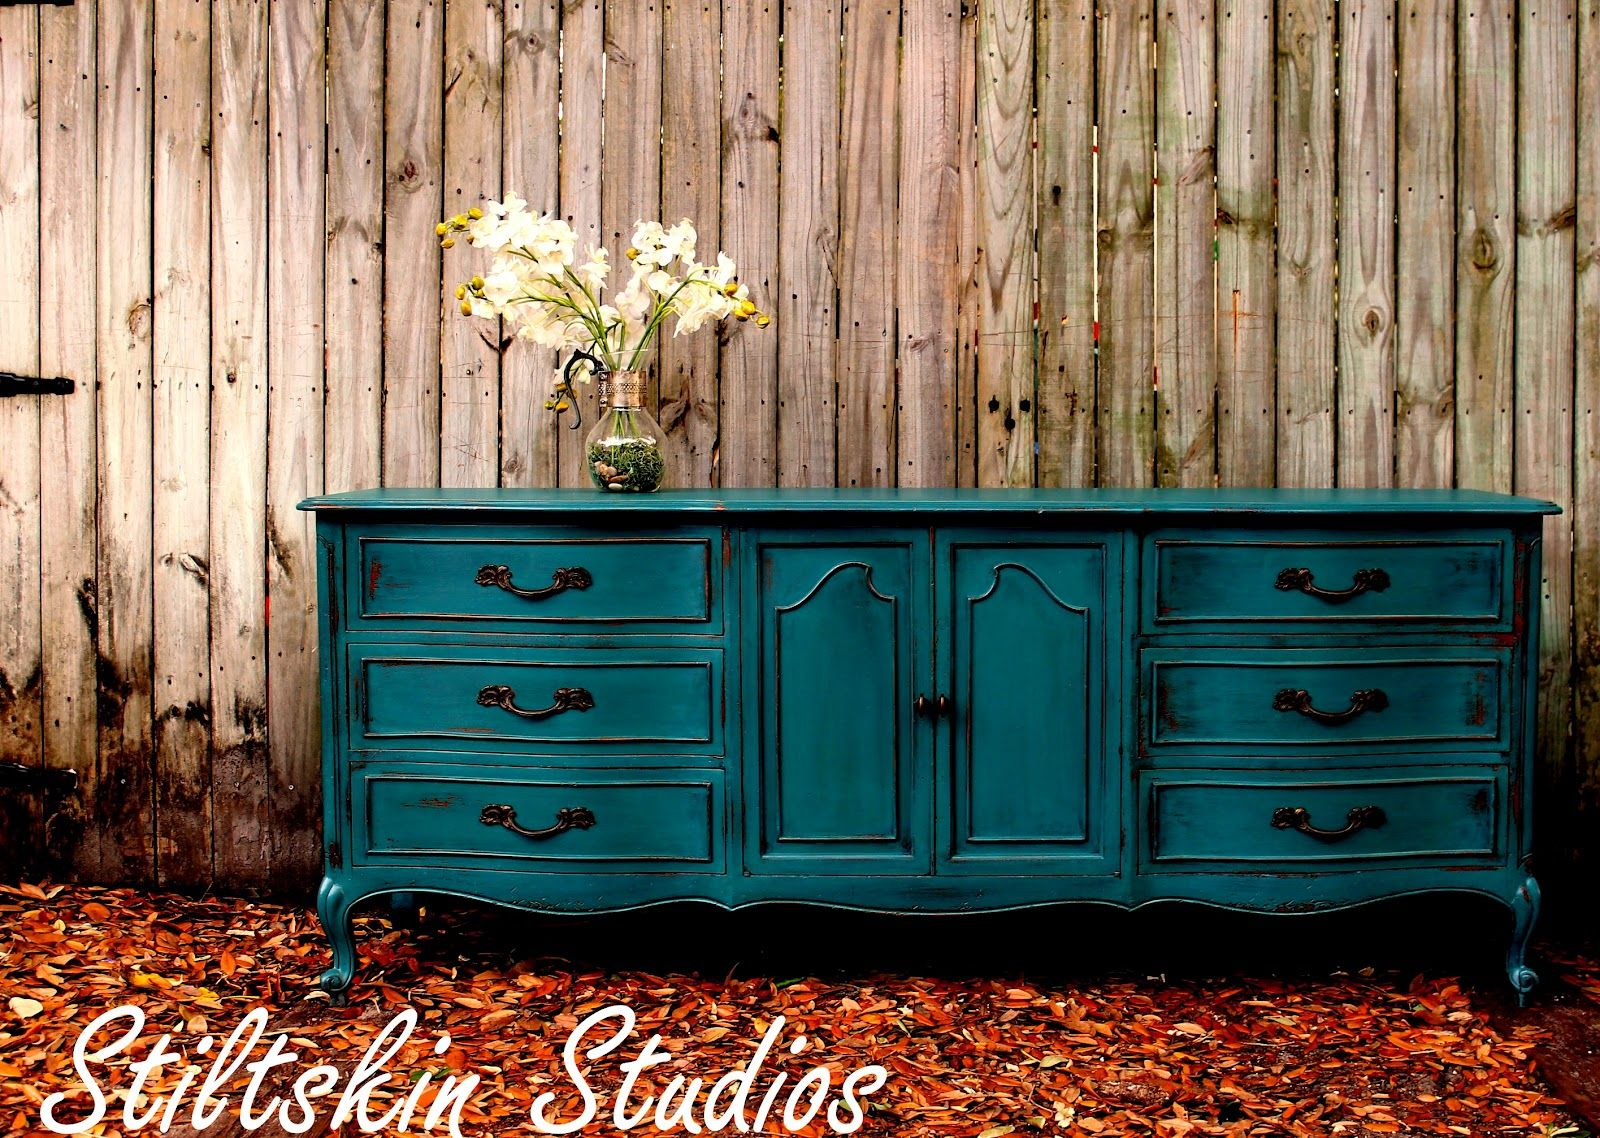 teal color furniture white painting french provincial furniture blue finally found few moments to finish this dresser